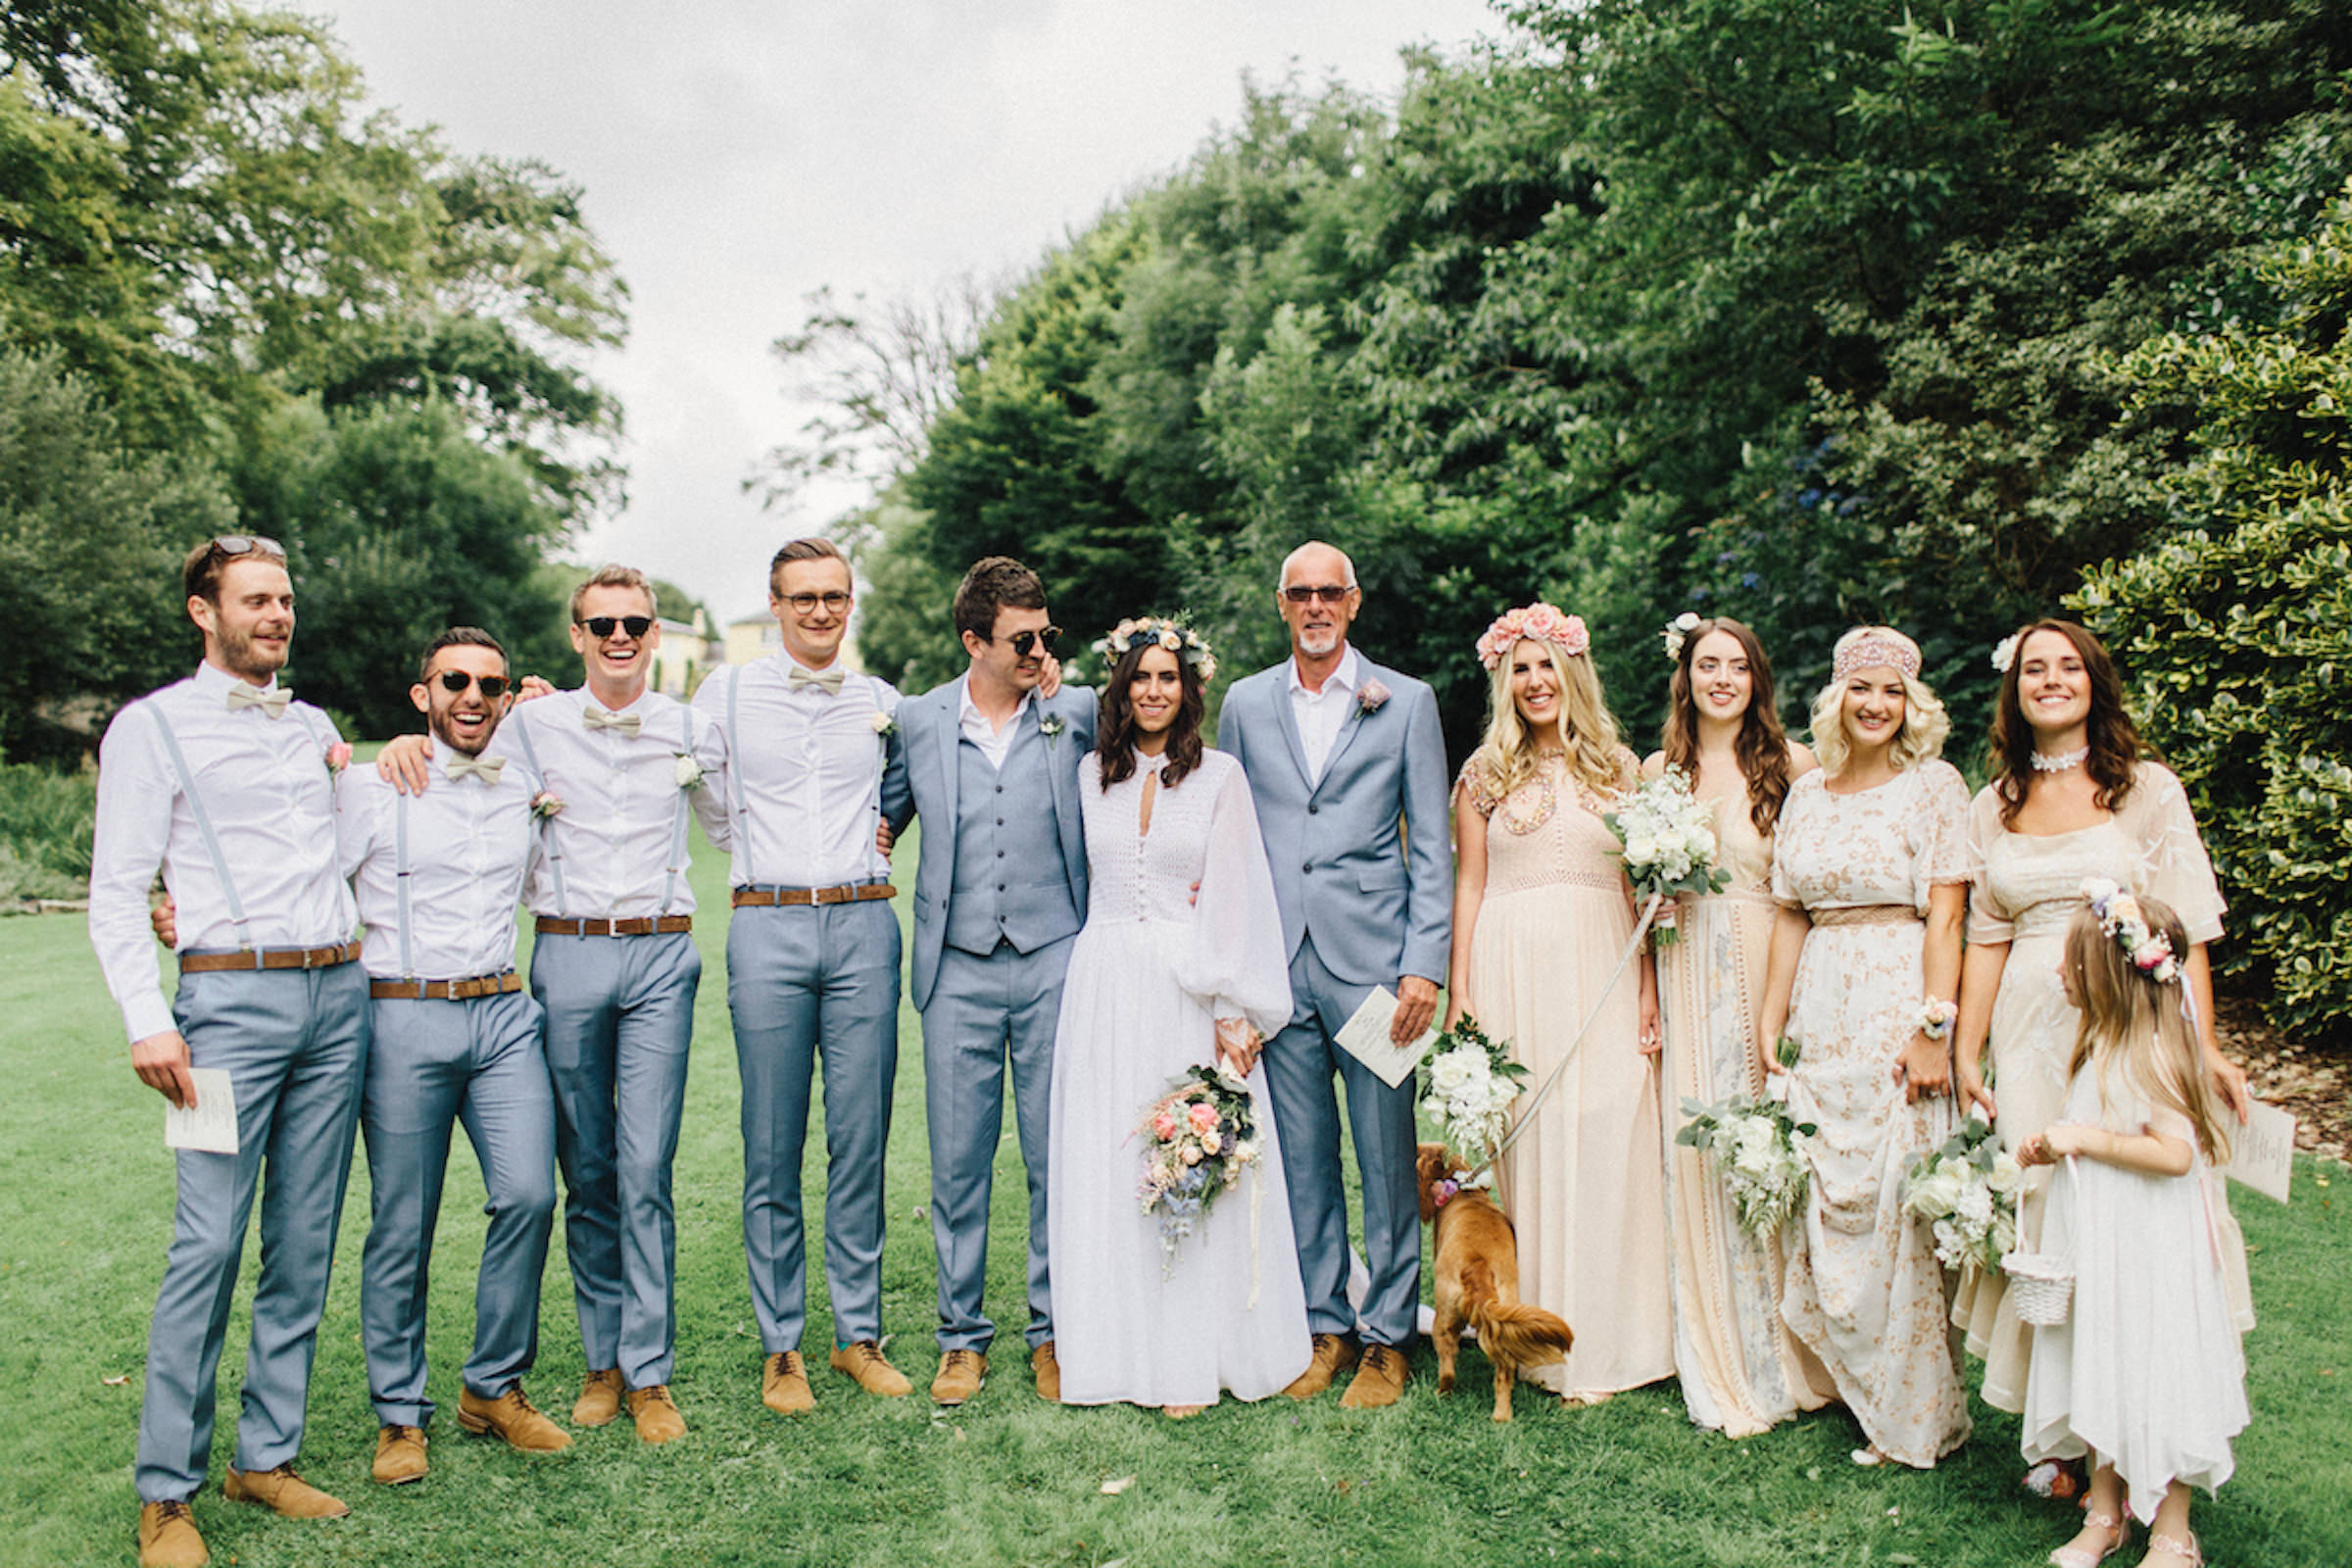 Bridal Party portraits with bride and groom, peach and denim blue colors  - photo by White Cat Studio